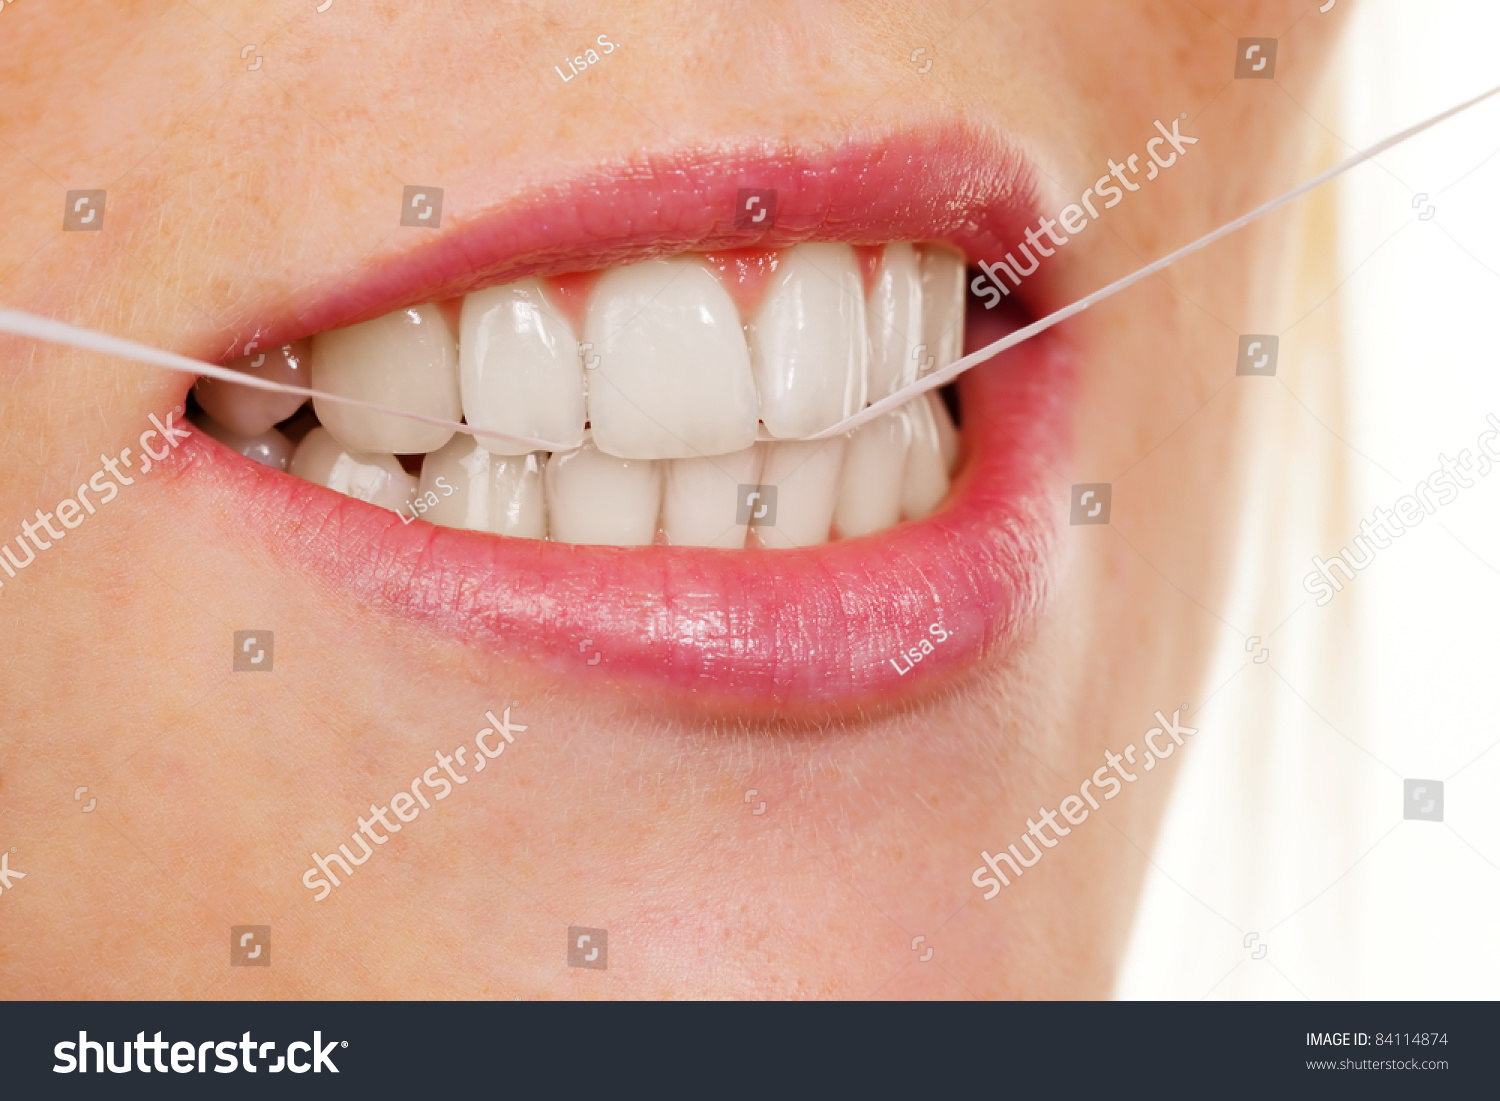 how to get dental floss out of your teeth